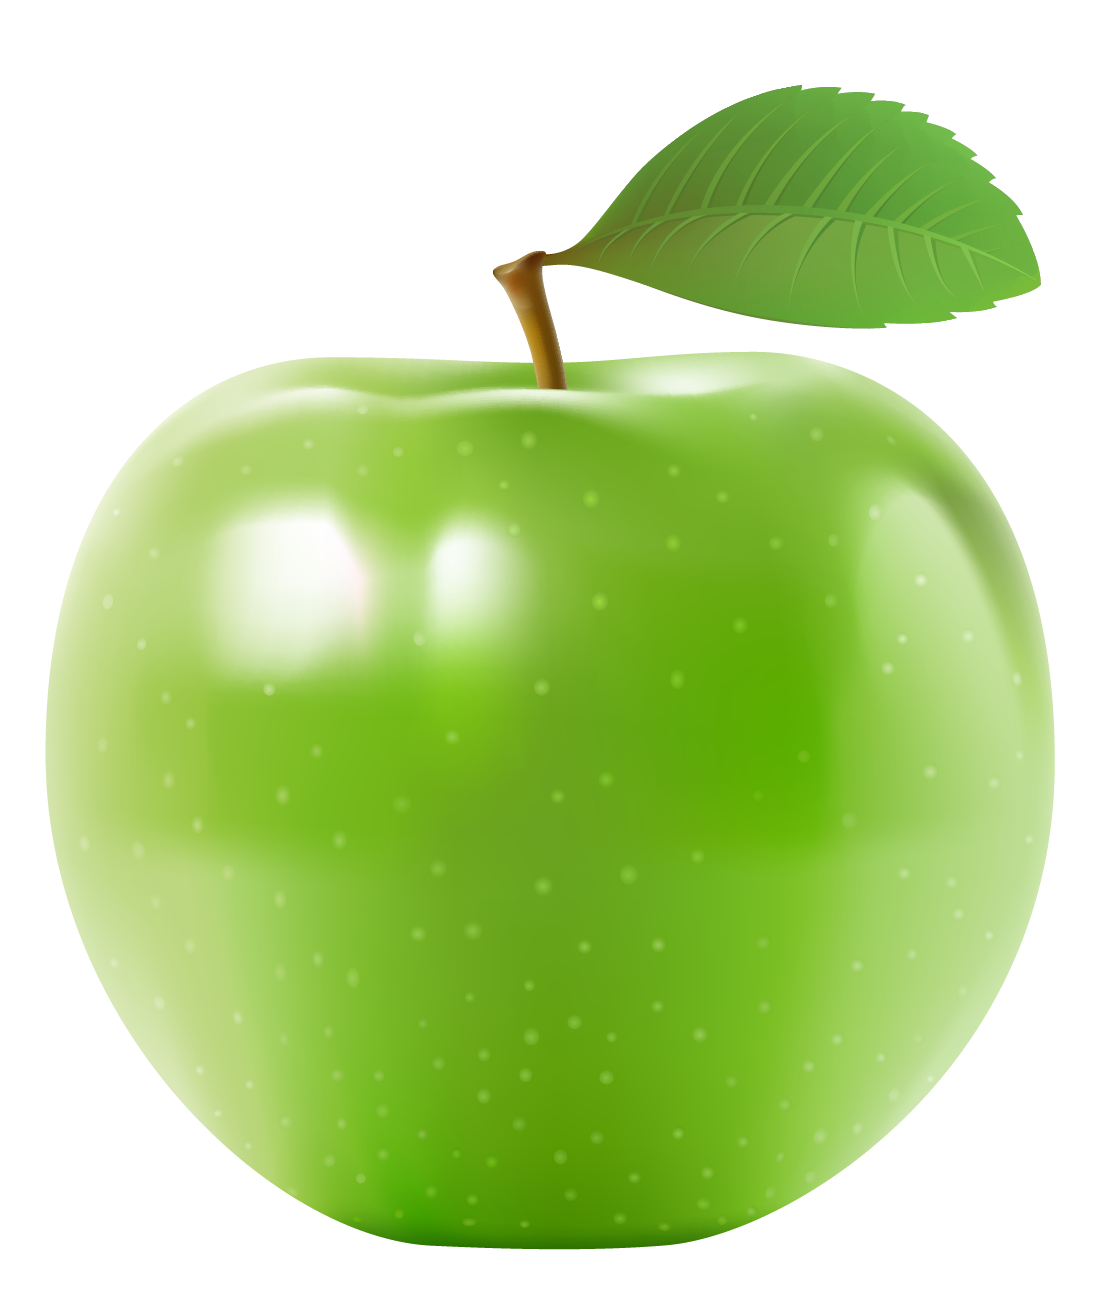 Green apple png. Clipart picture gallery yopriceville